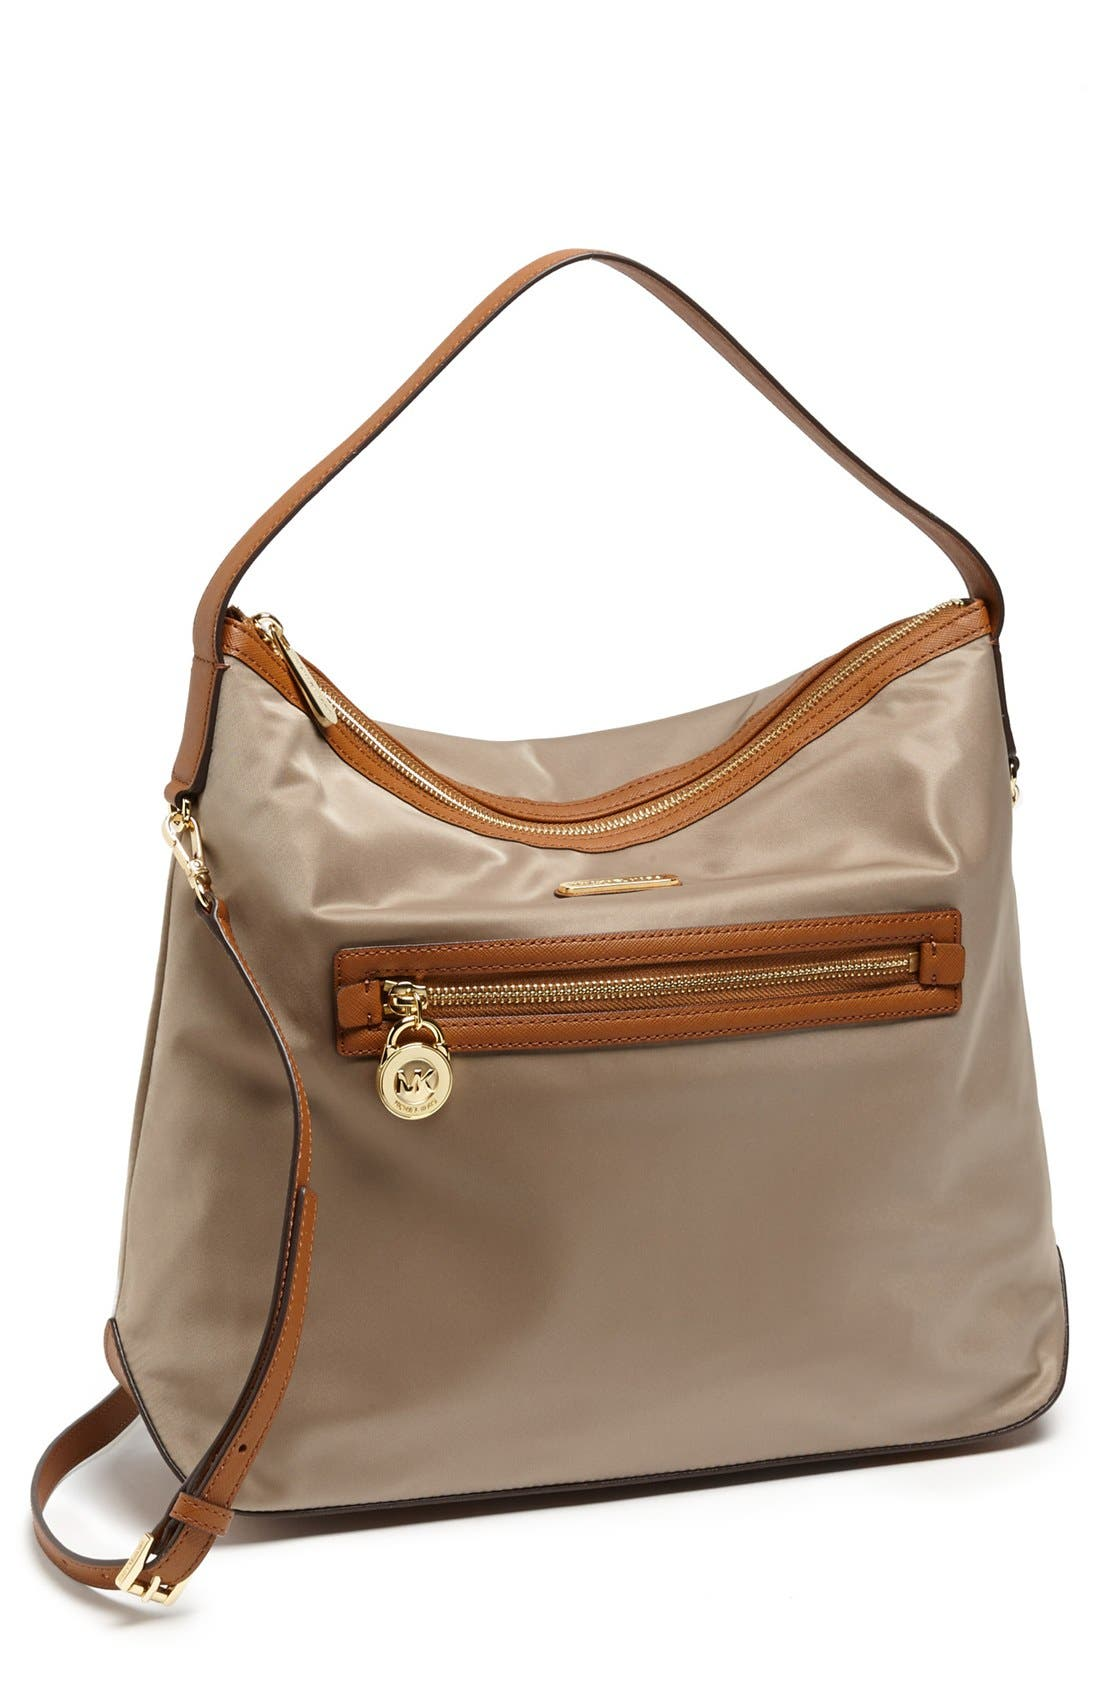 Alternate Image 1 Selected - MICHAEL Michael Kors 'Kempton - Large' Nylon Satchel